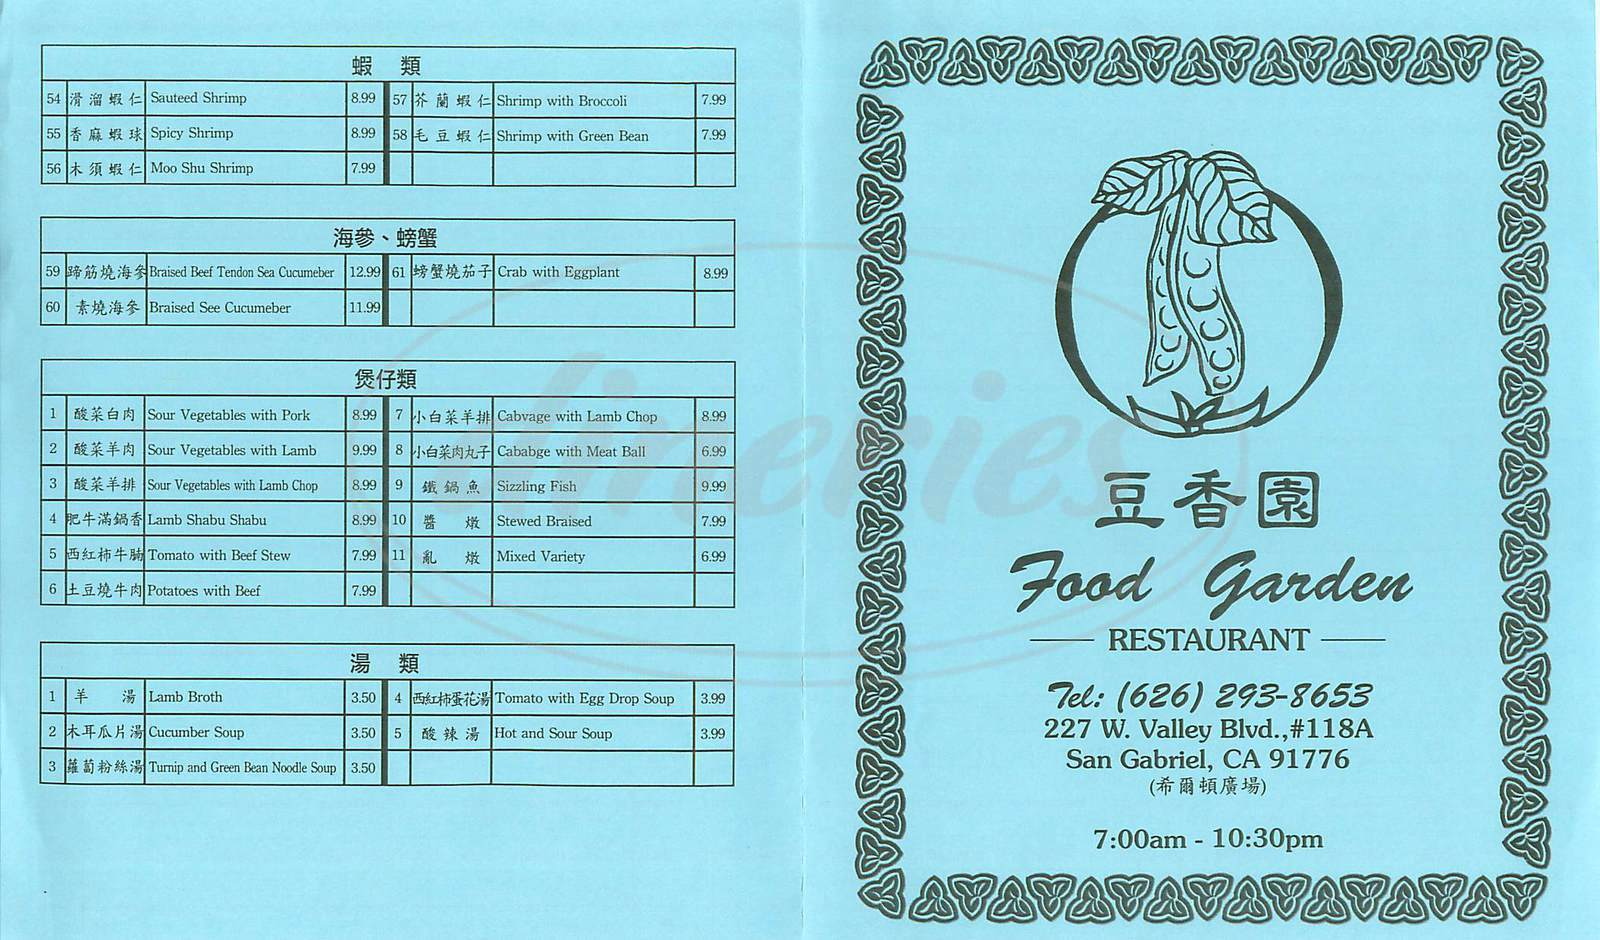 menu for Food Garden